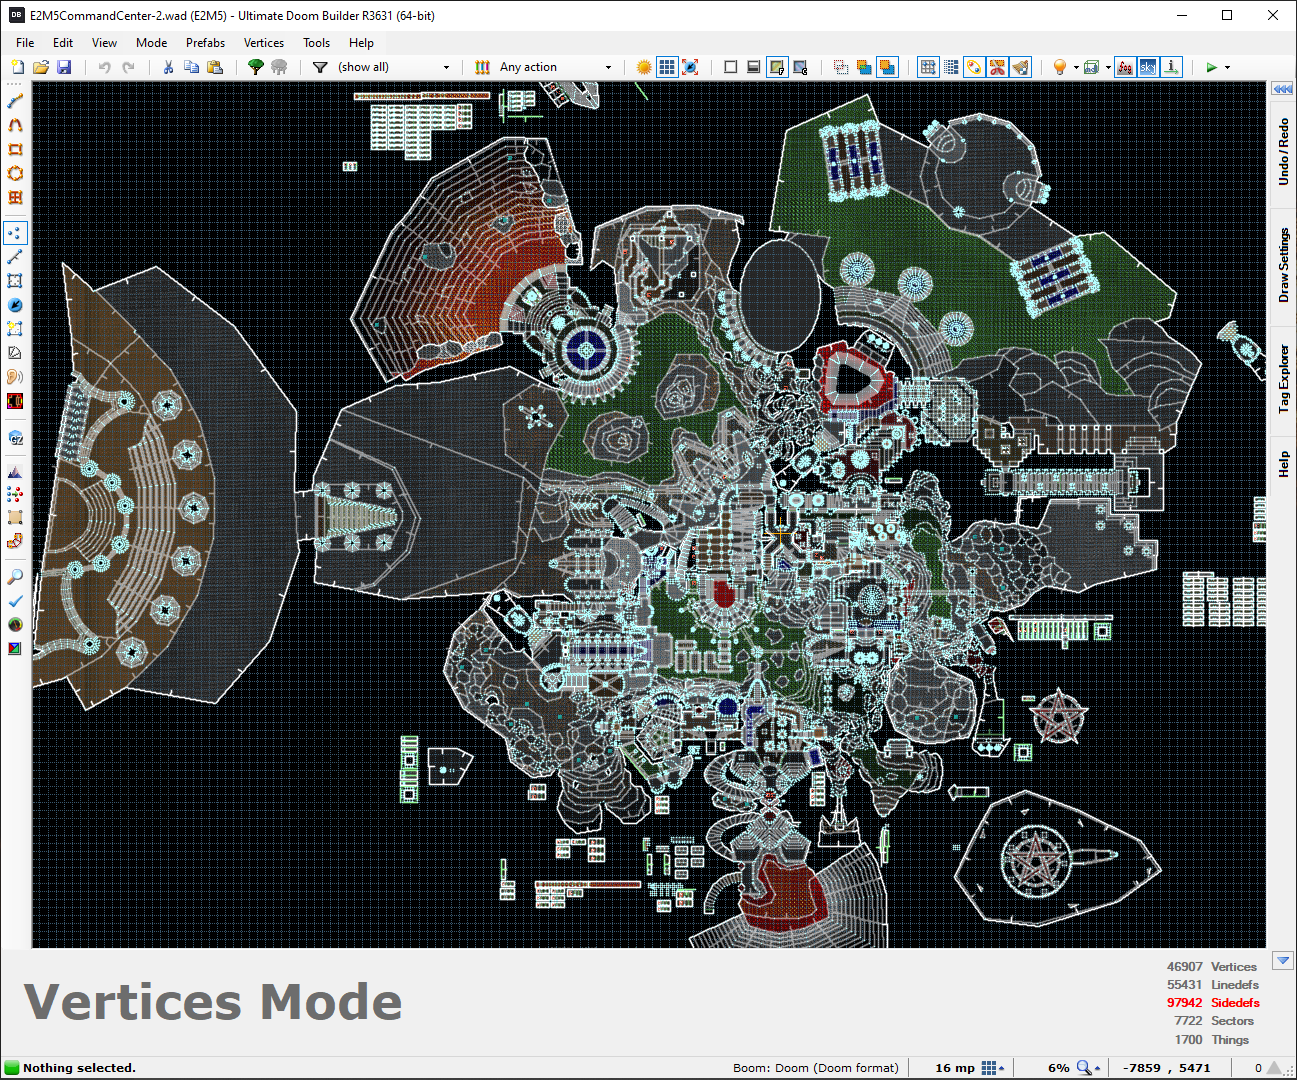 map-30-10-2020.png.22afe51b1ac206598f9209096ad23777.png